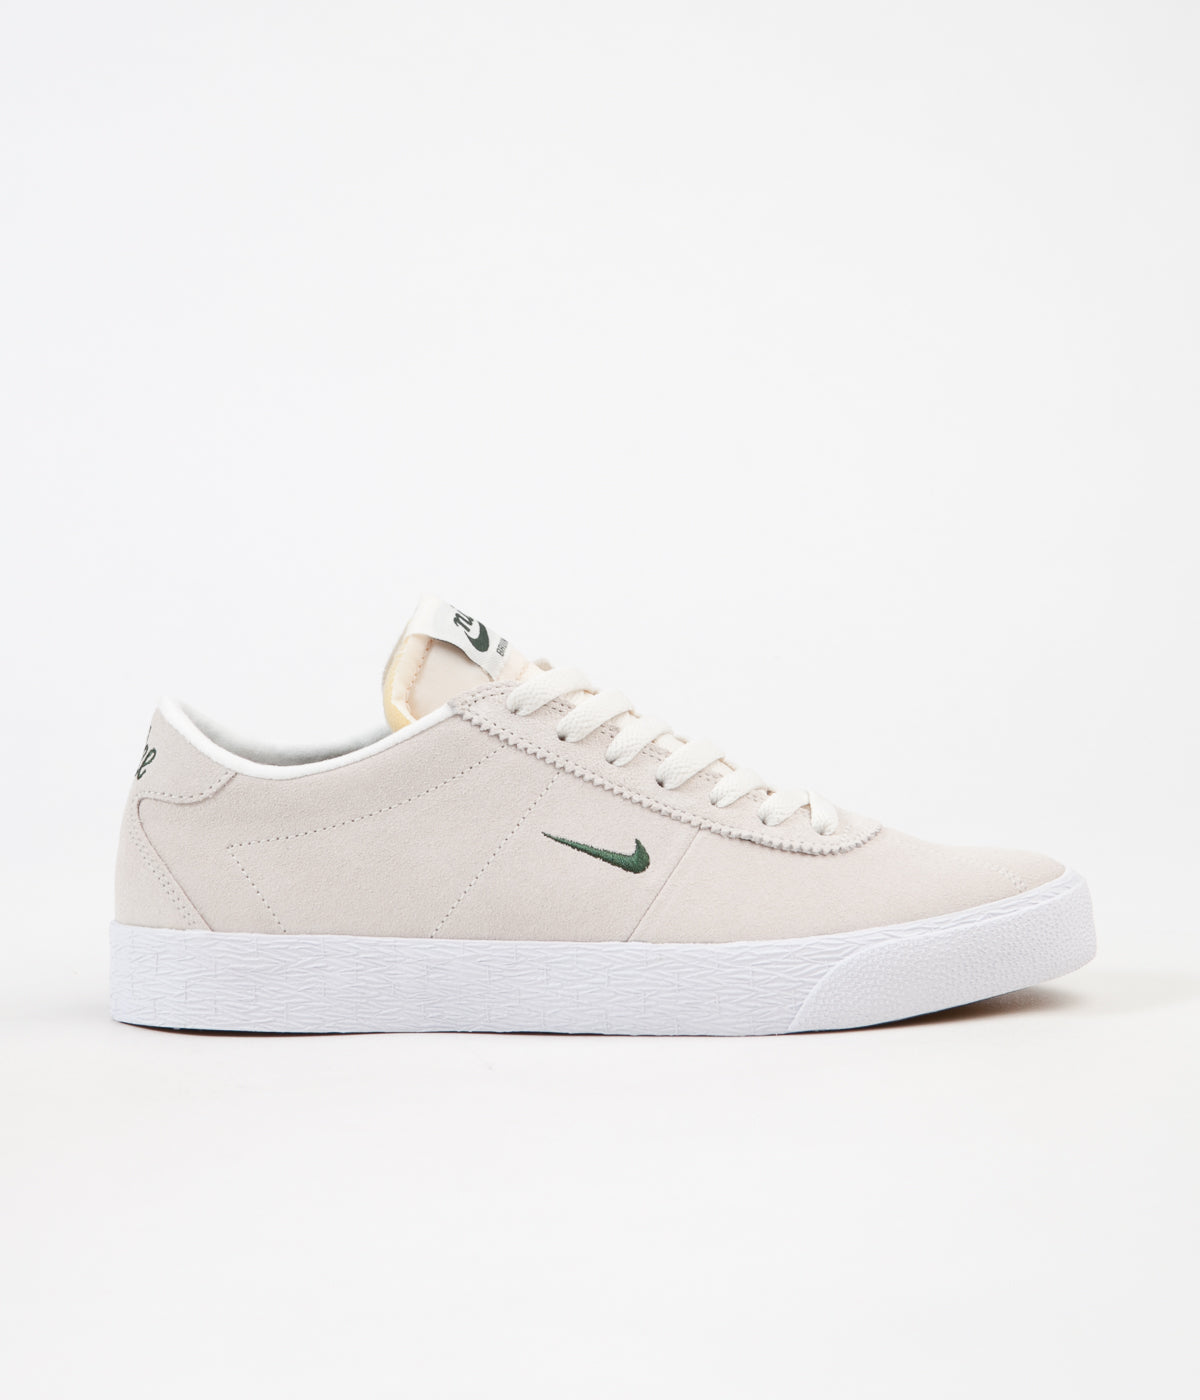 Nike SB Bruin Ultra Shoes - Sail / Fir - White - Gum Light Brown